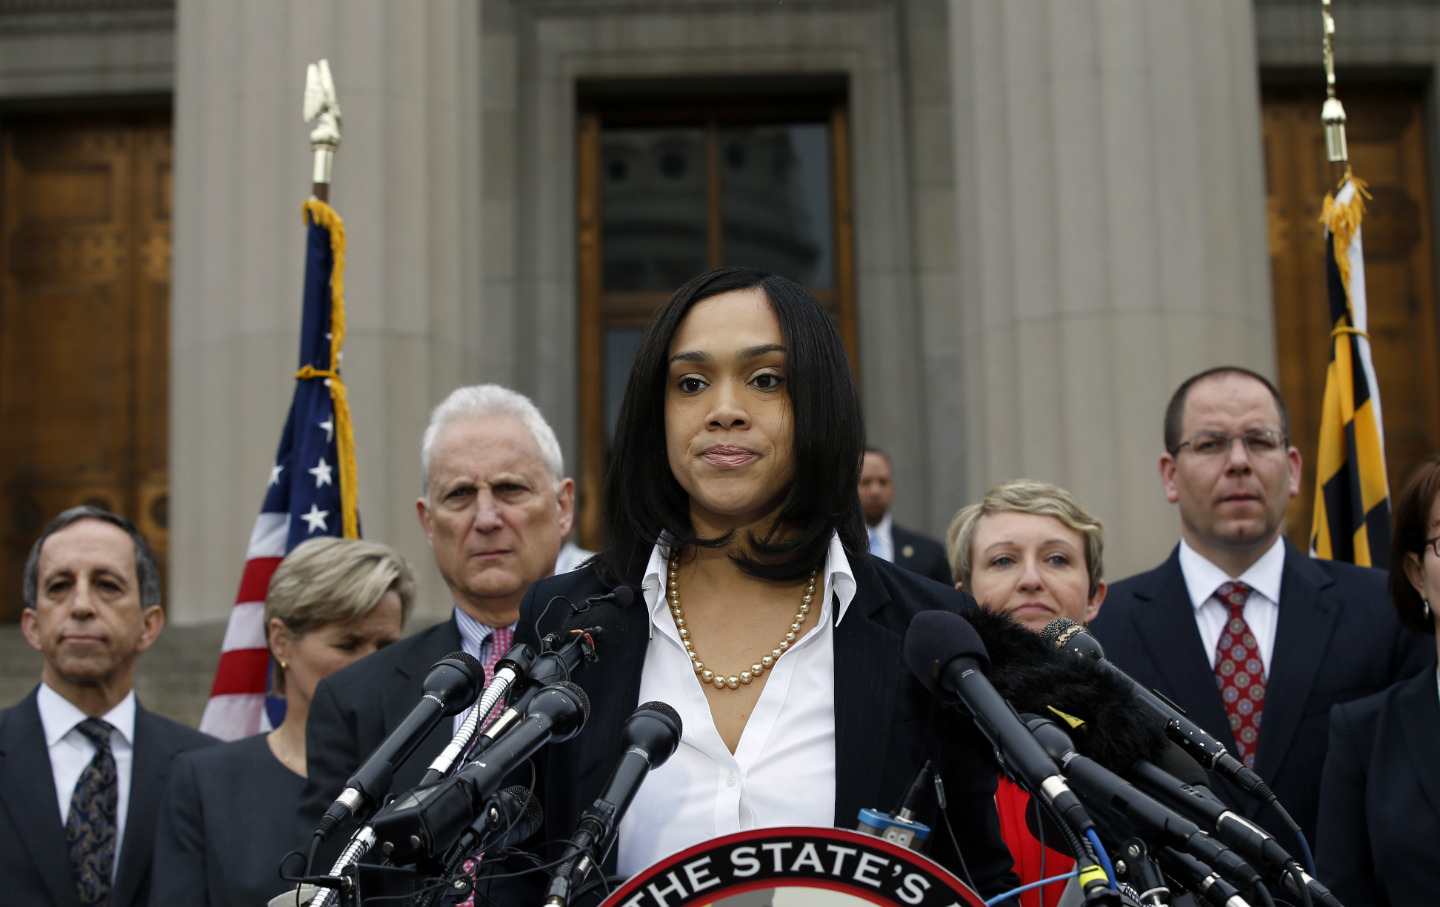 Marilyn-Mosby-Baltimore-states-attorney-APAlex-Brandon